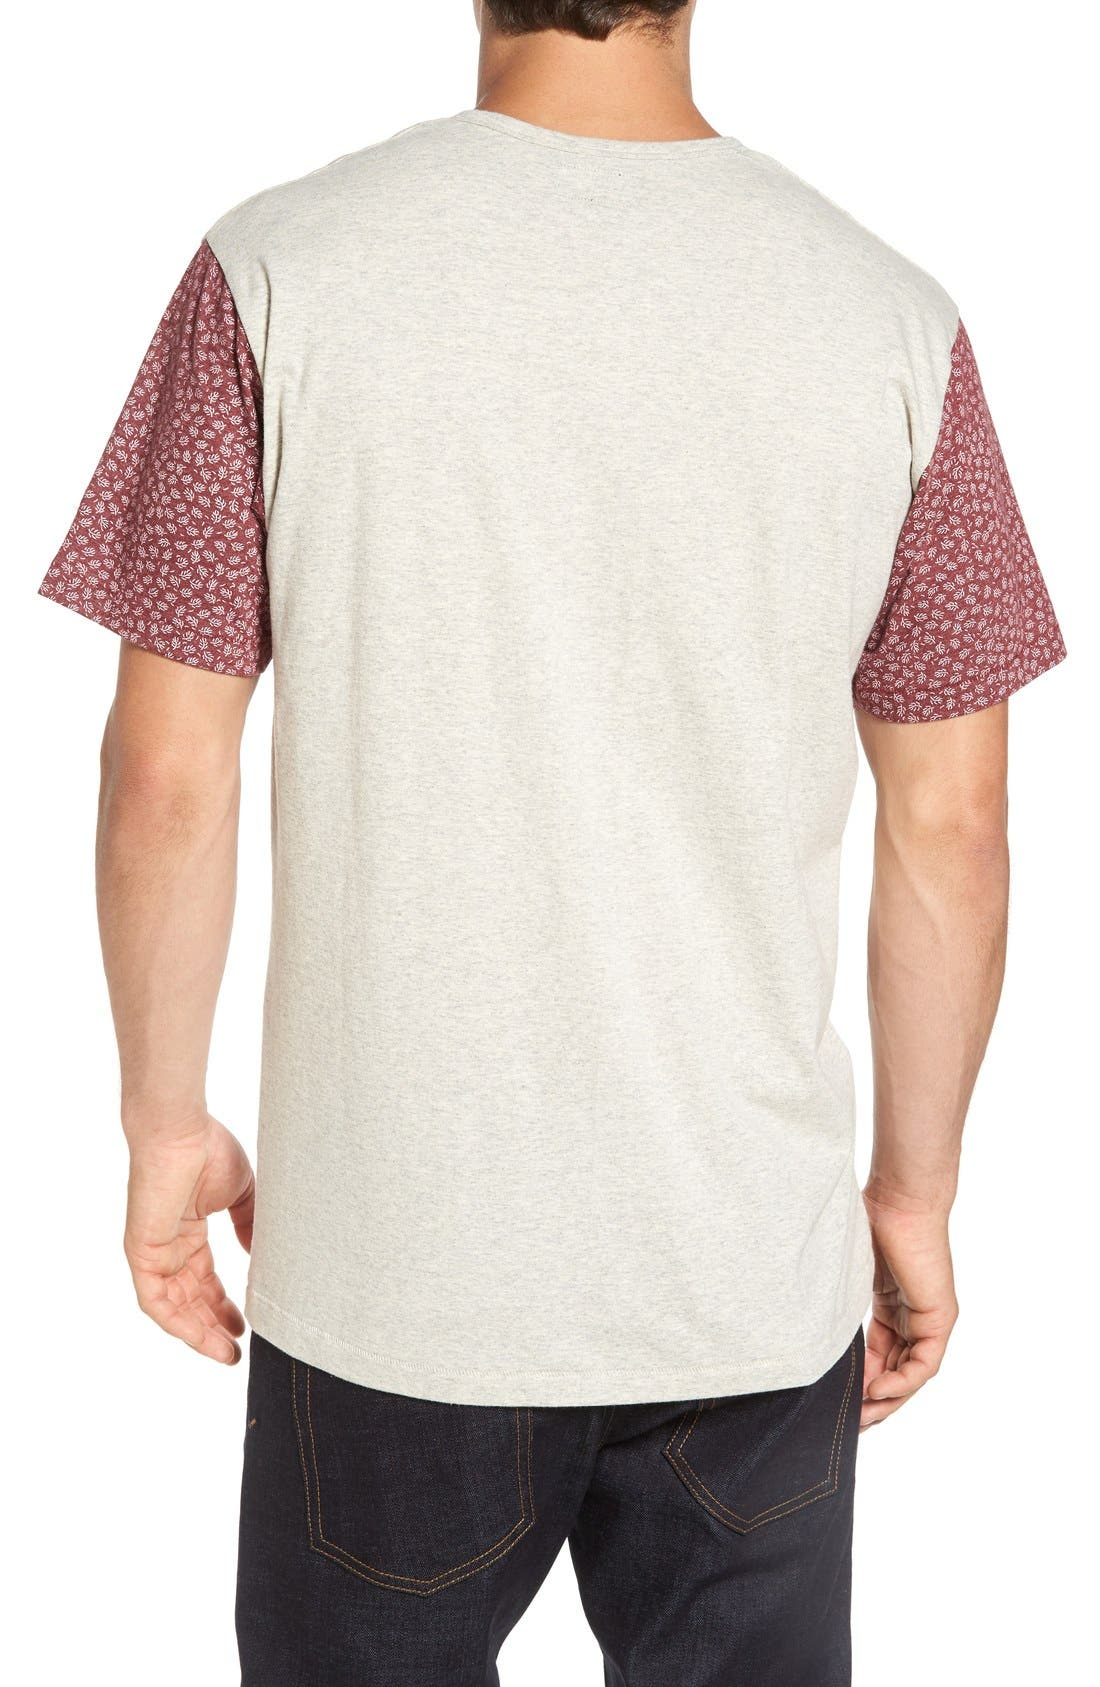 Alternate Image 2  - Imperial Motion 'Harper' Short Sleeve Pocket Henley T-Shirt